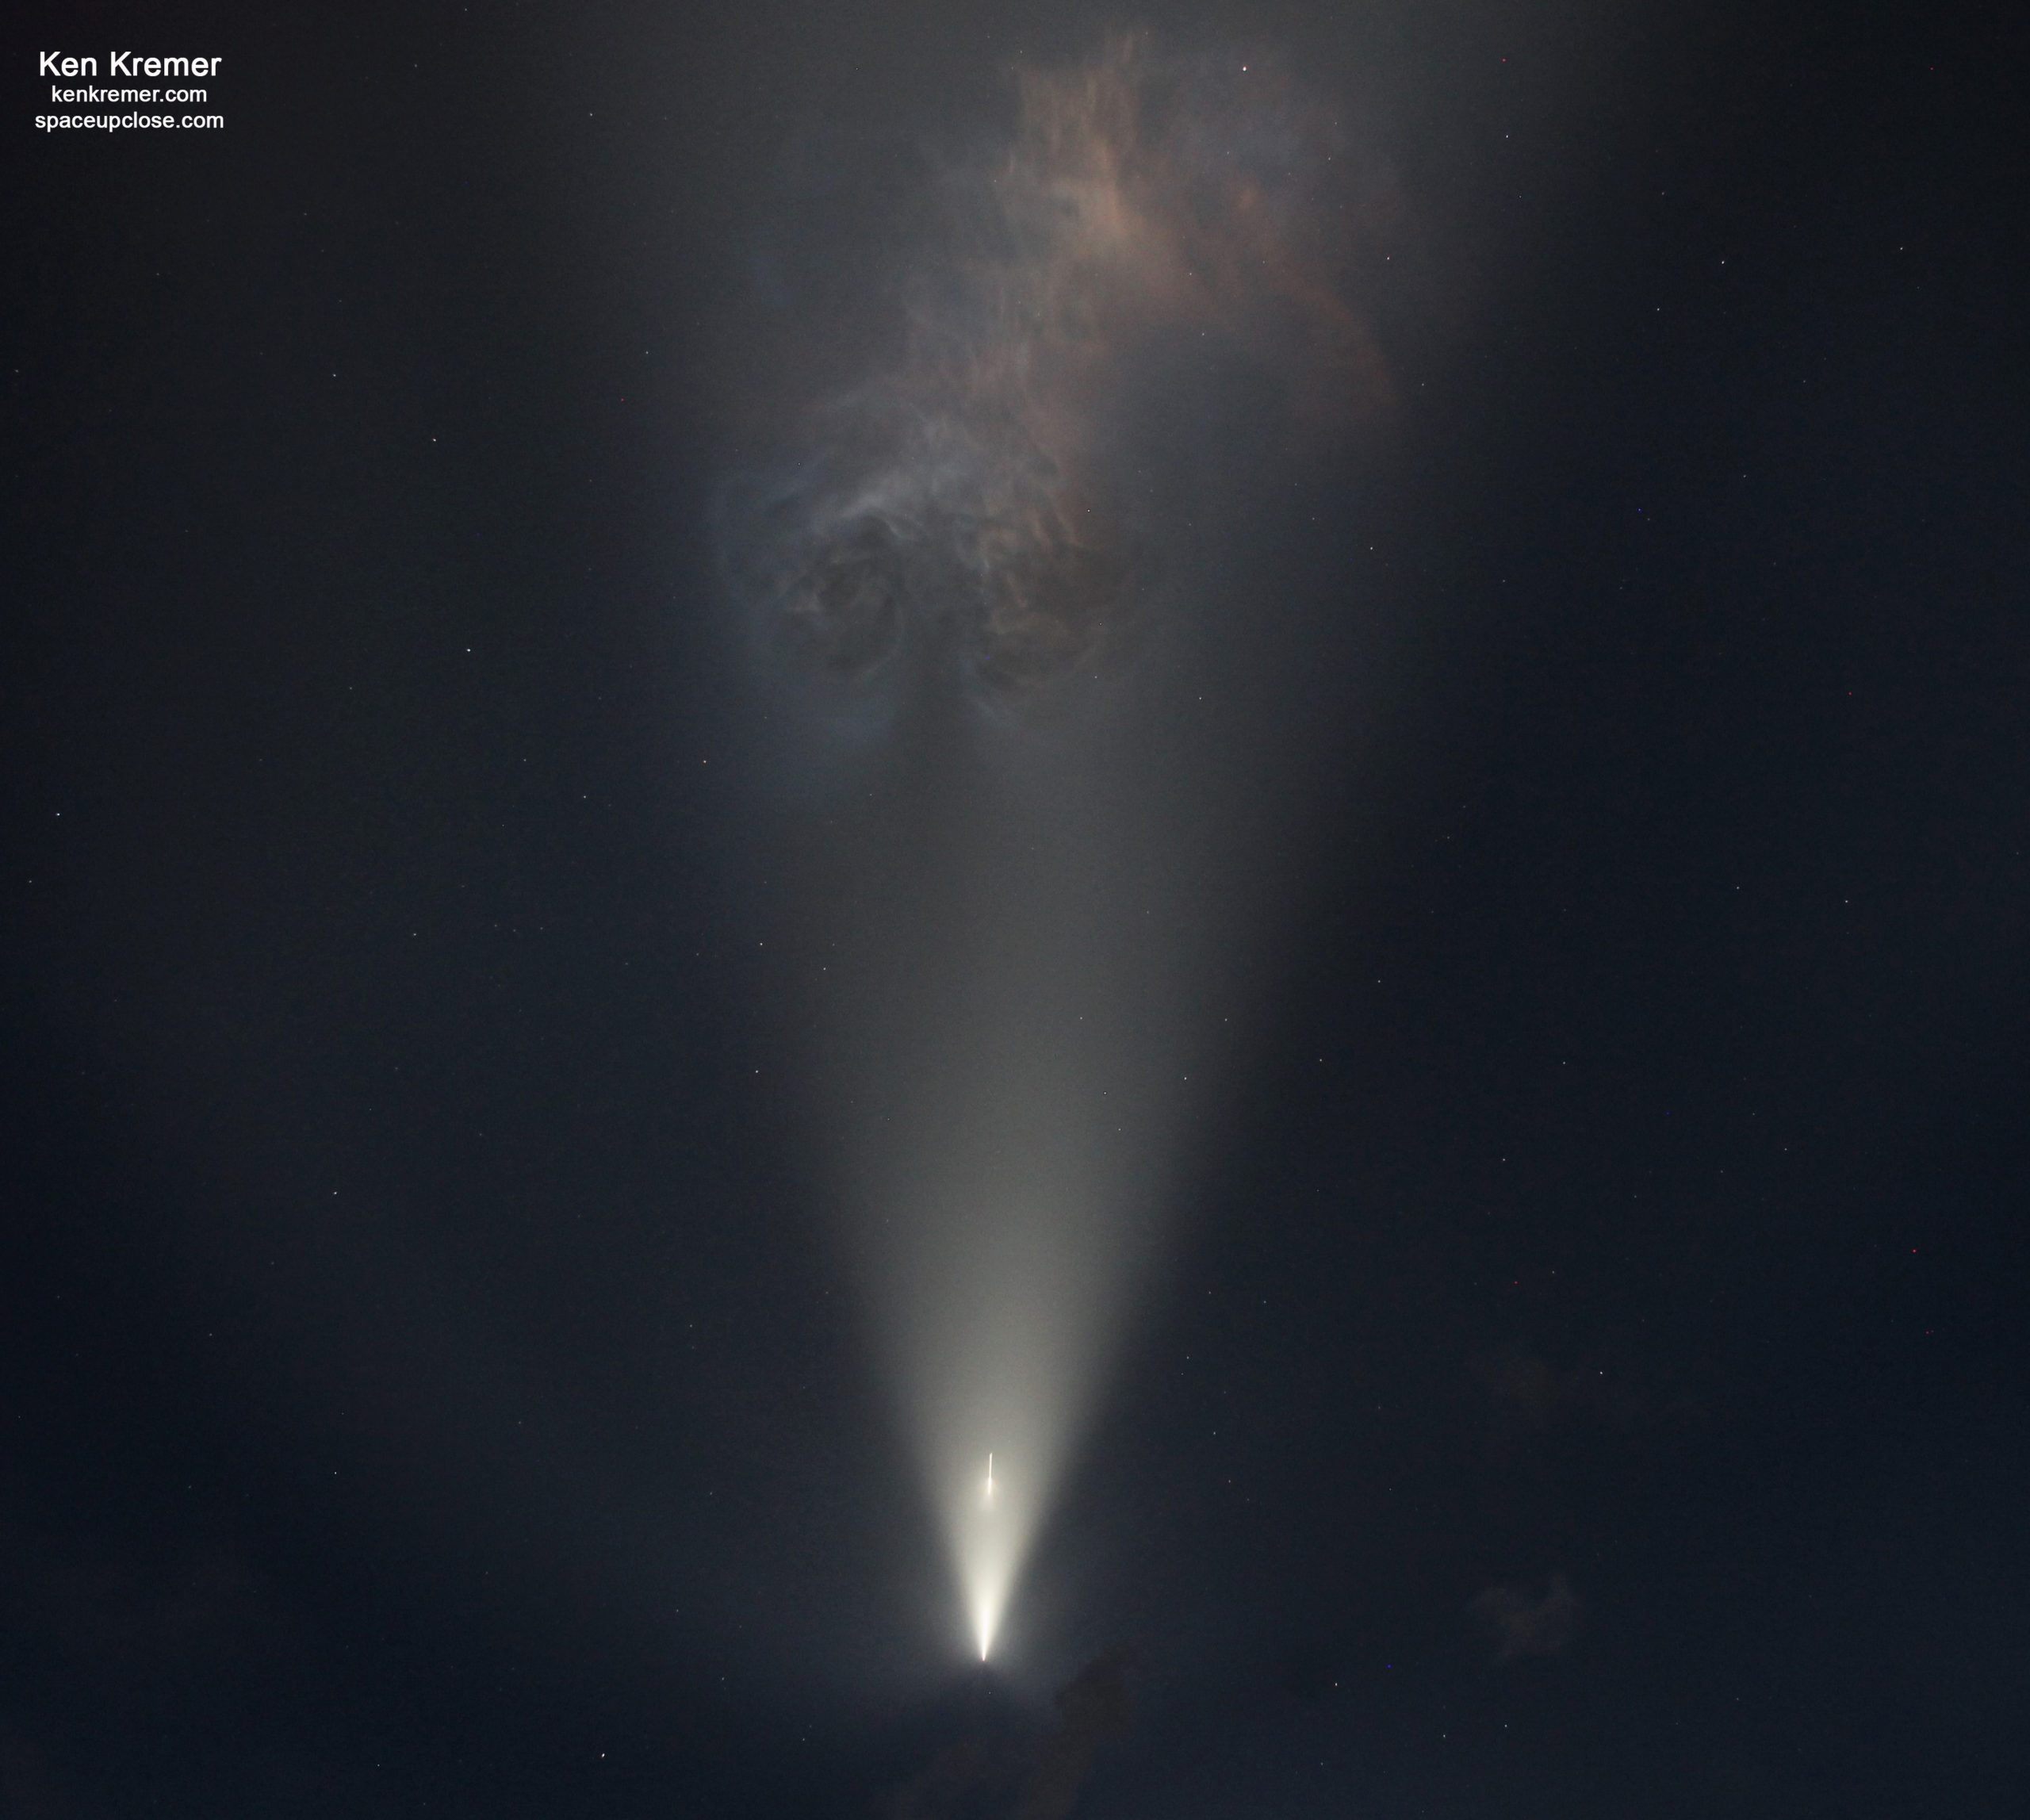 SpaceX Launches Inspiration4 on Picture Perfect Historic 1st All-Civilian Mission to Orbit Aboard Crew Dragon: Photos